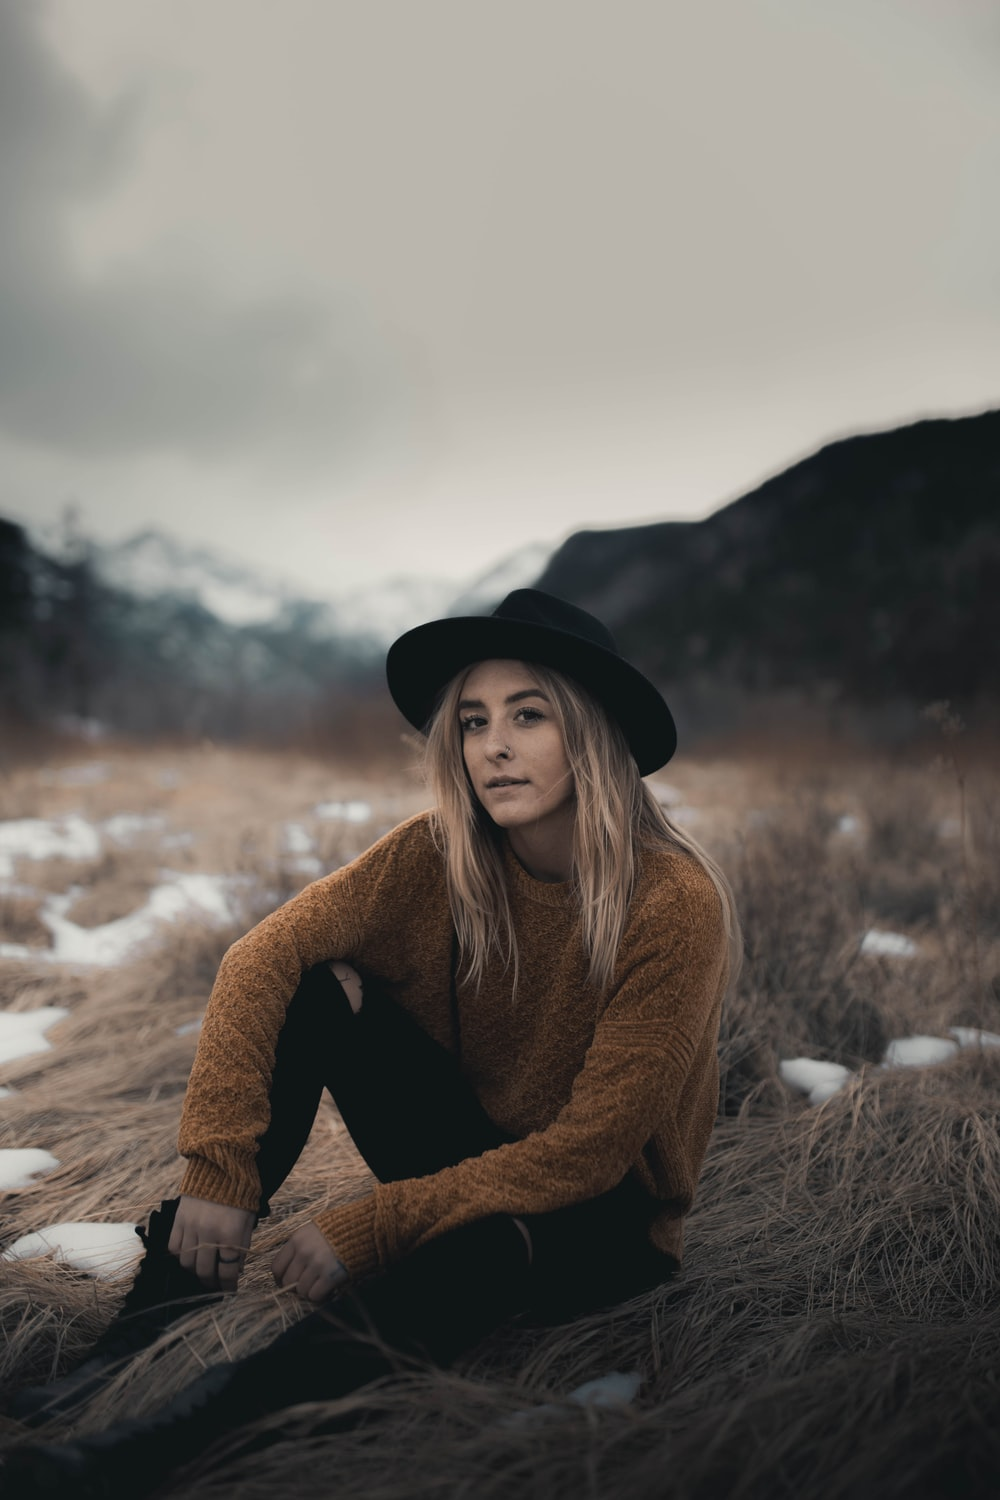 woman in brown sweater and black hat sitting on snow covered ground during daytime